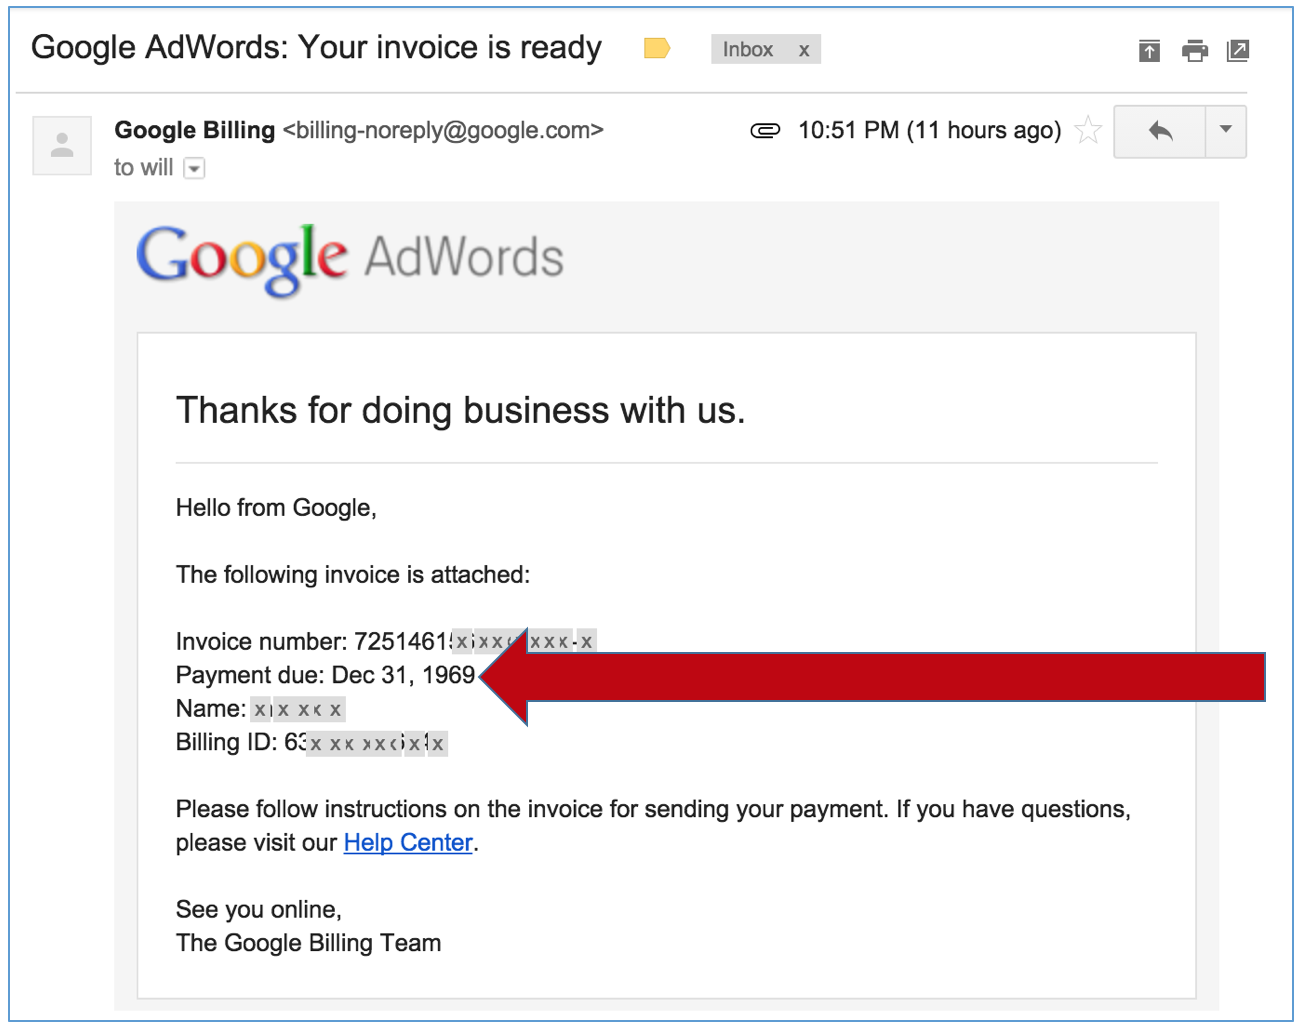 a minor bug in google adwords will marlow agency